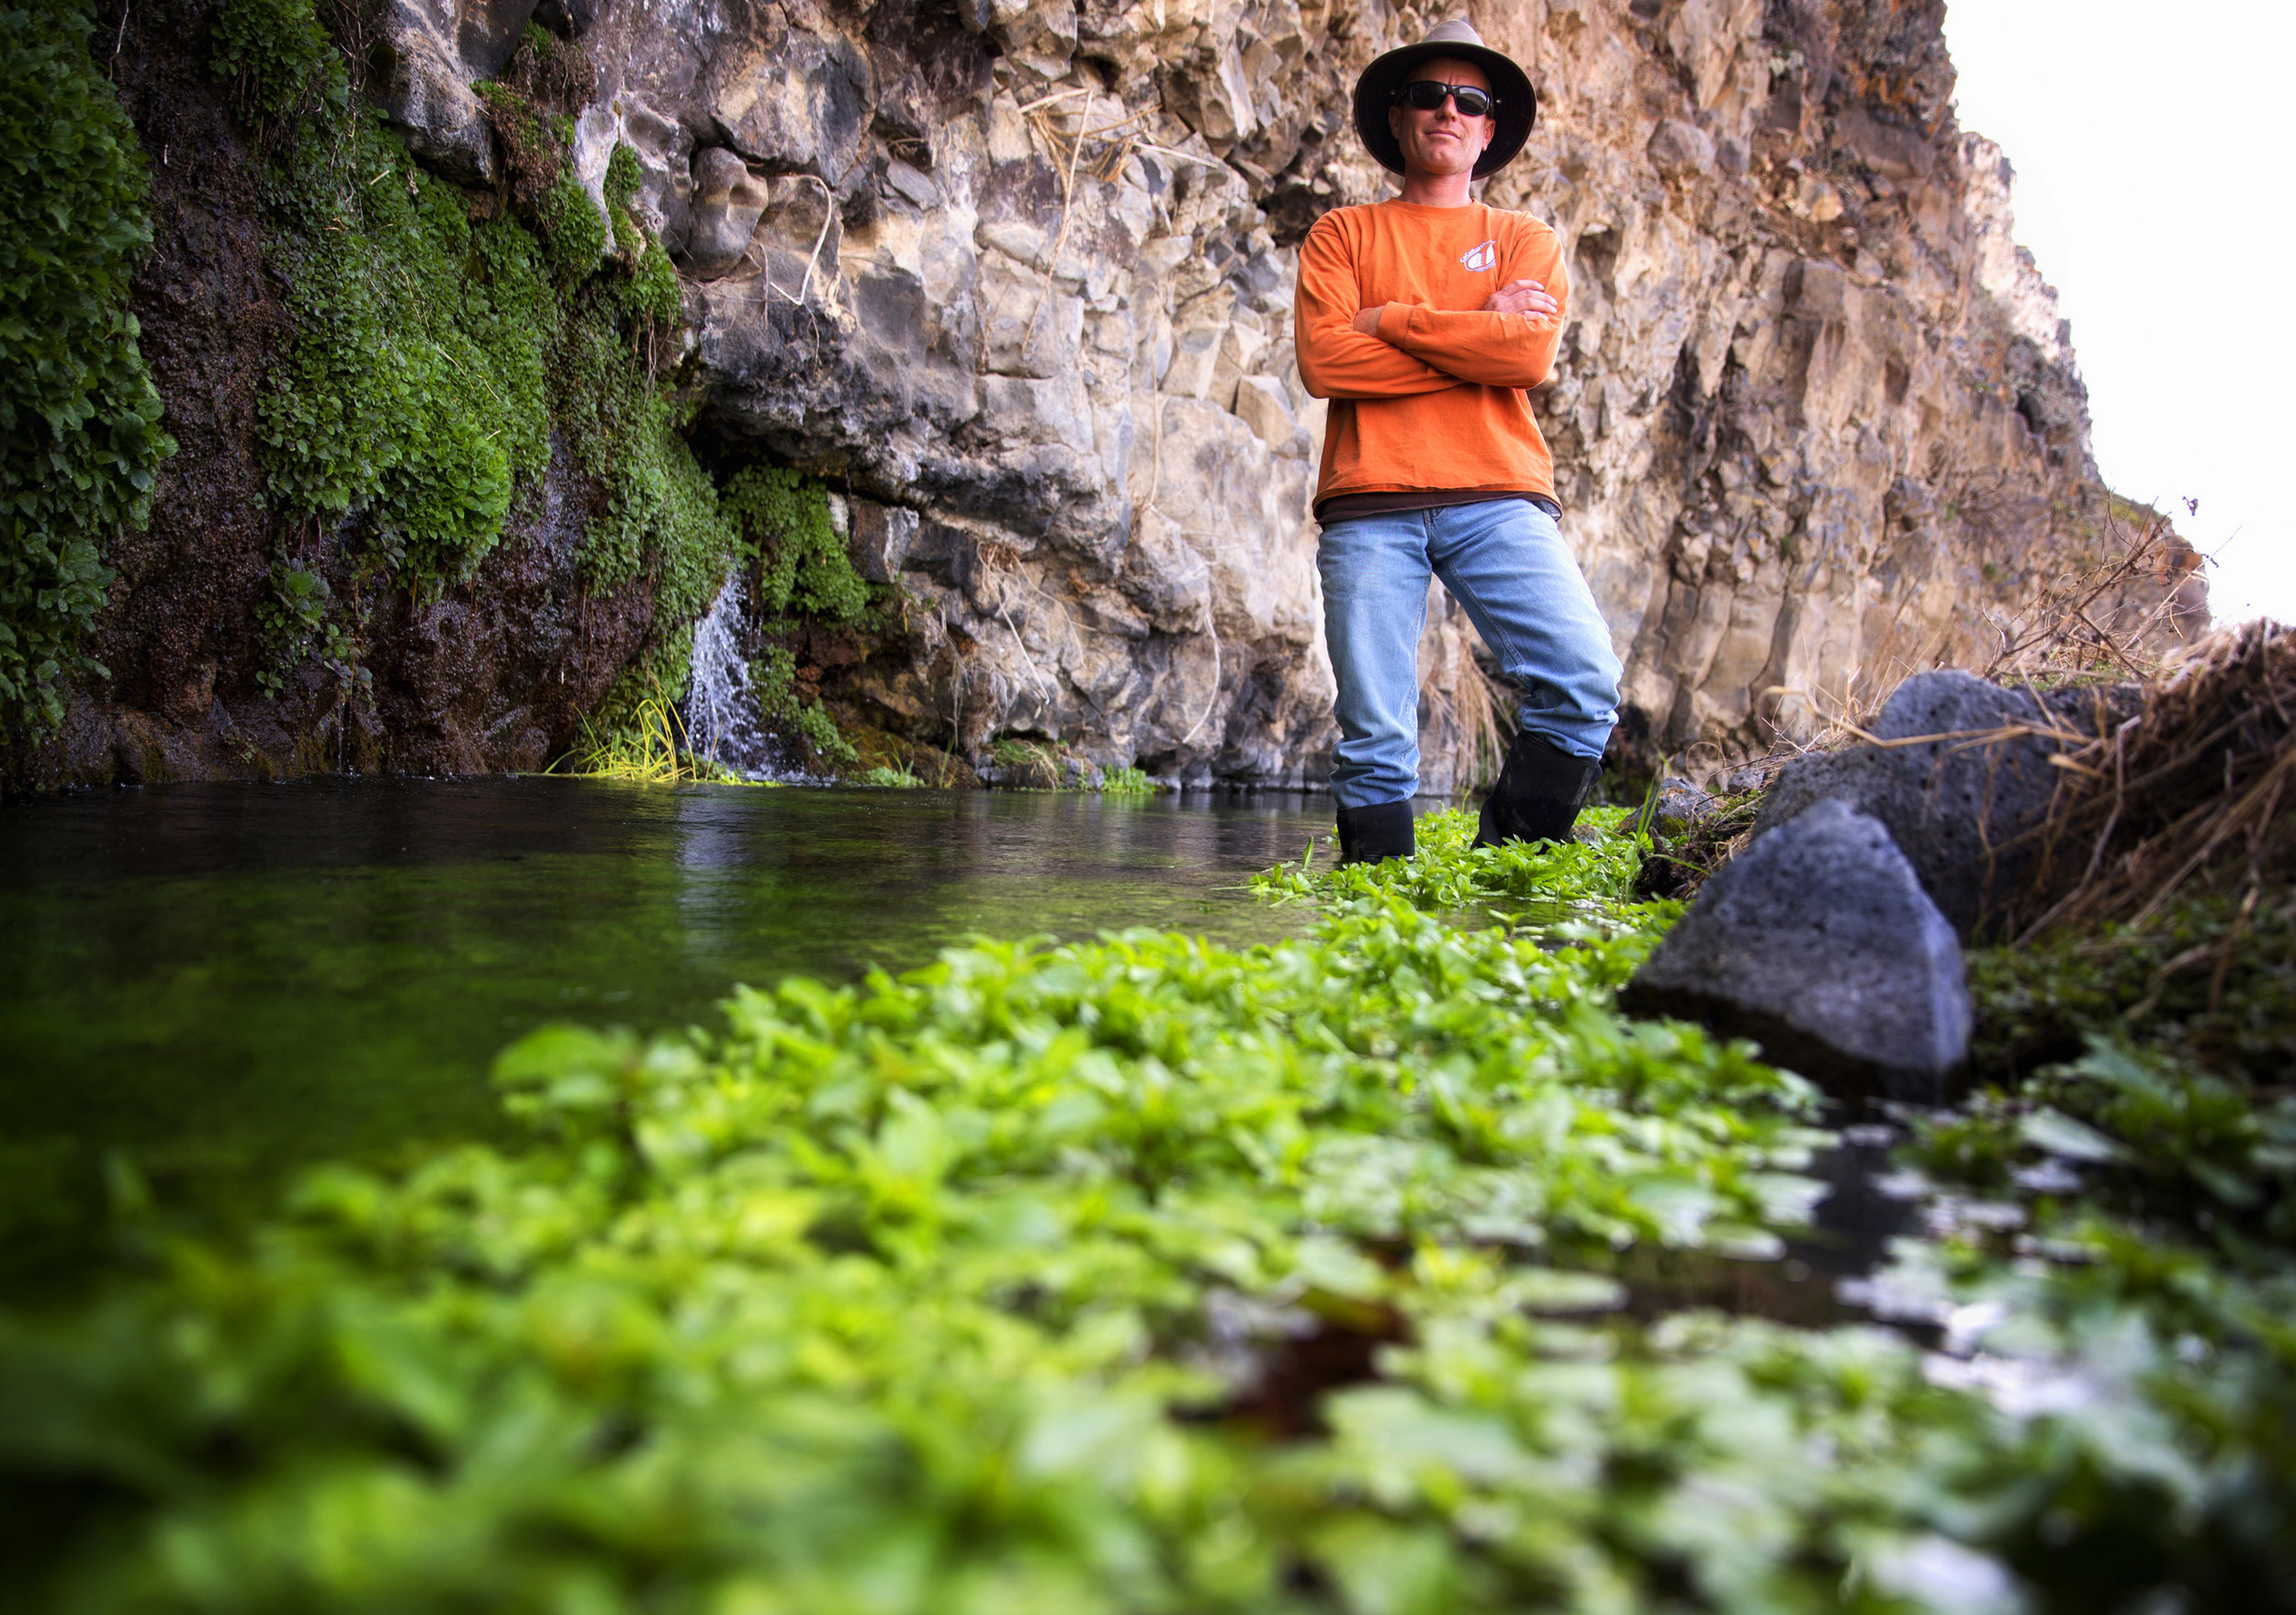 Idaho Aquaculture Industry - Manager Dirk Bogaard poses for a portrait in the natural spring water used at his facility Tuesday, March 14, 2017, at Idaho Trout Company in Hagerman Idaho. Bogaard says the aquaculture industry's future lies in lower waste loads. 'The ability to produce fish economically with the water we have available is key,' he says.